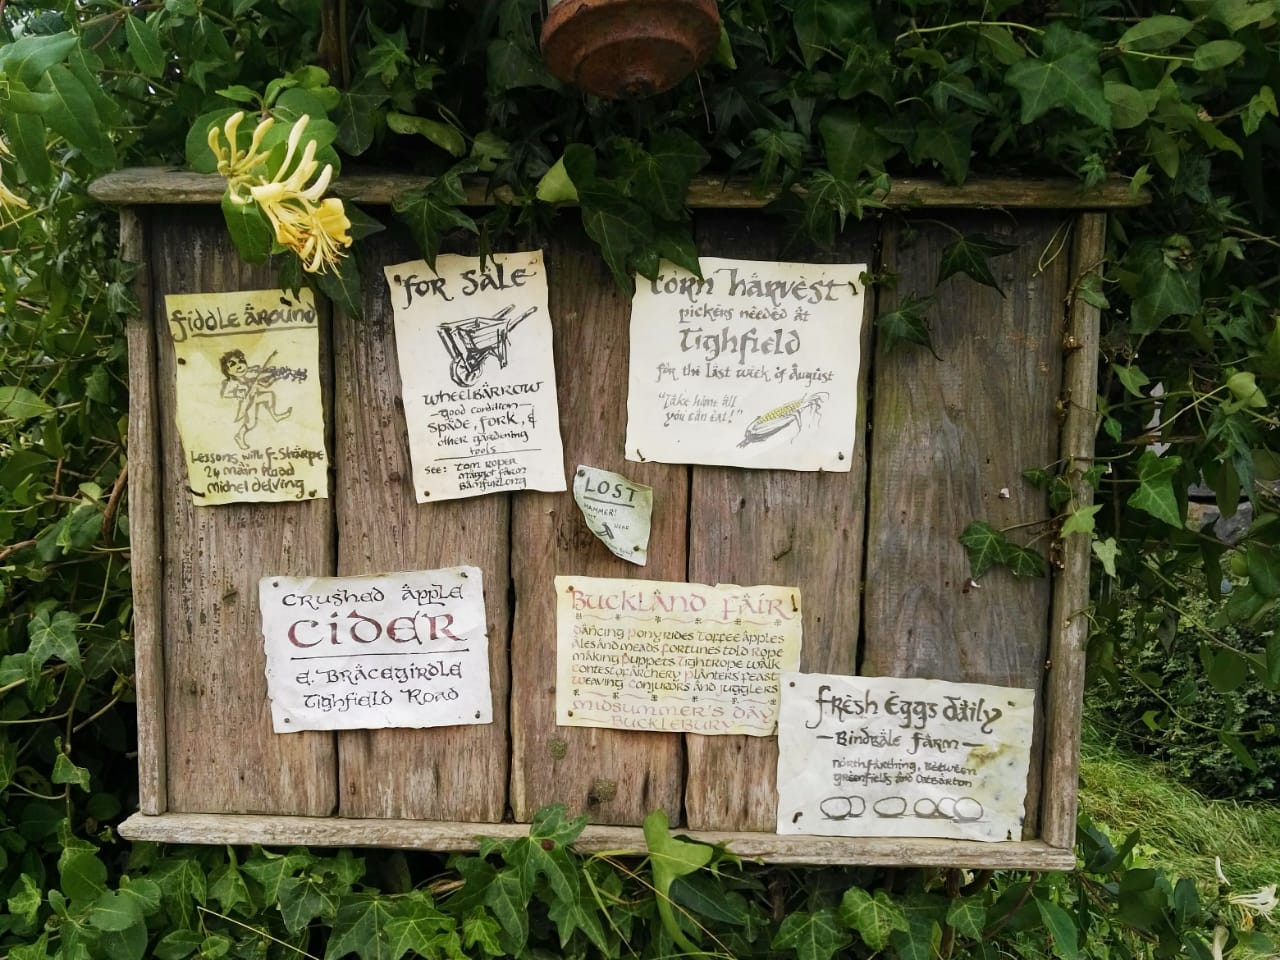 The notice board at the Hobbiton movie set in Matamata offers a glimpse into Shire life.